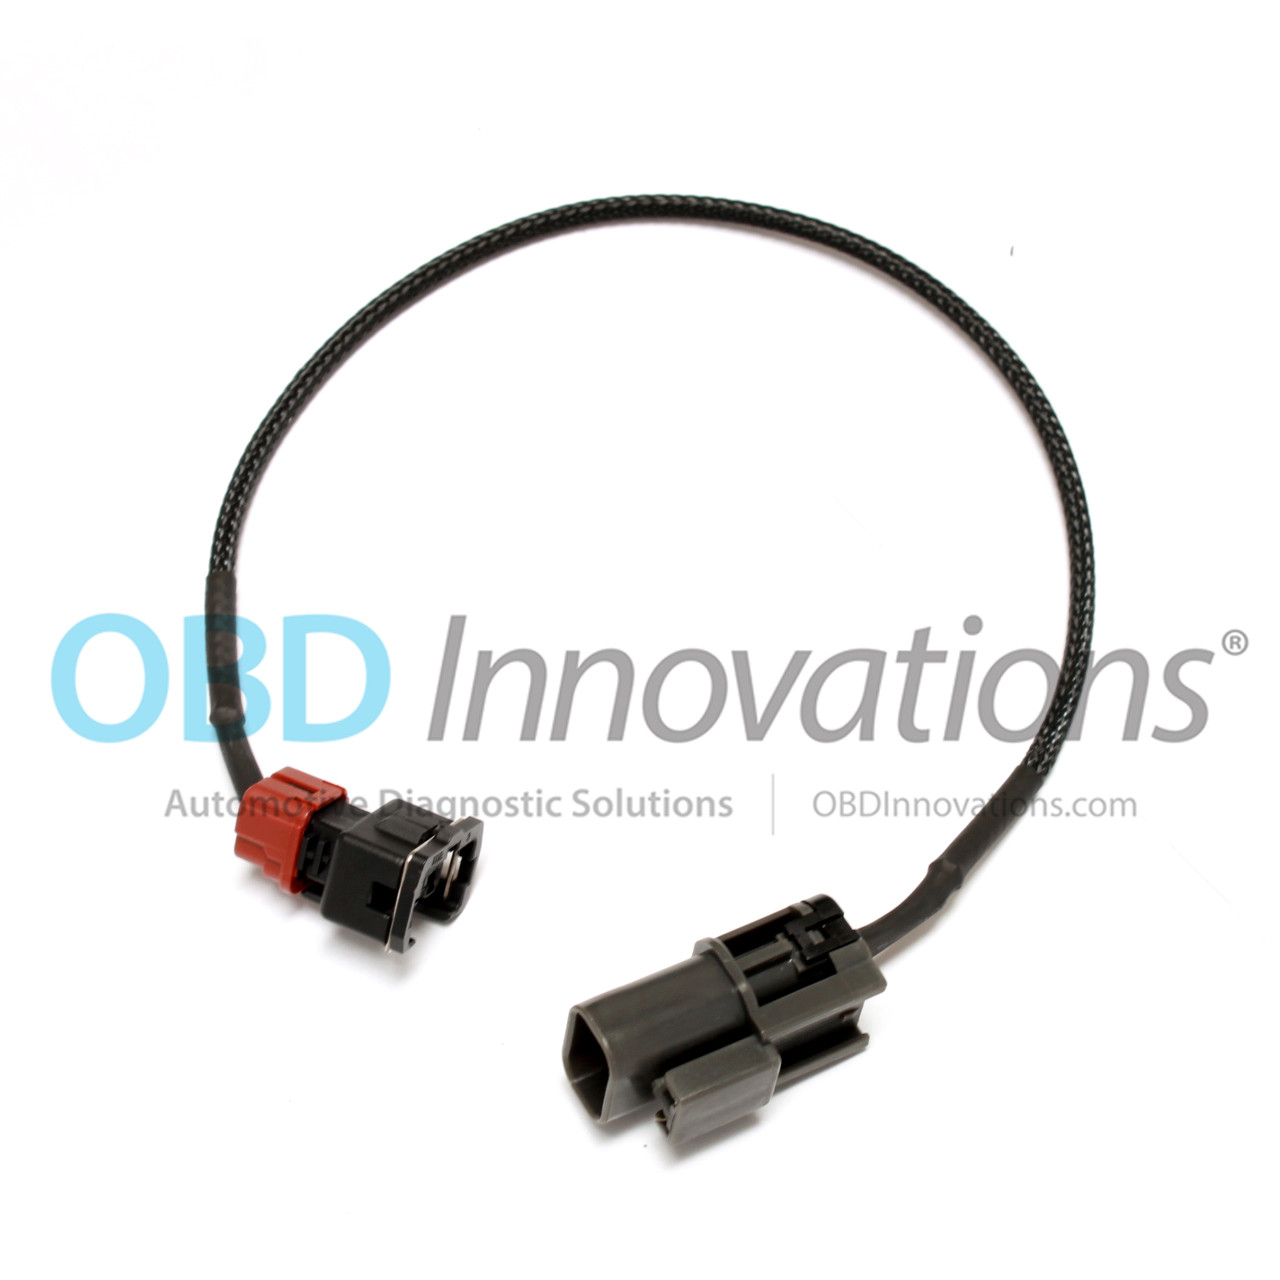 Knock Sensor Sub Harness for the Nissan 180sx 240sx S13 S14 KA24DE Engine